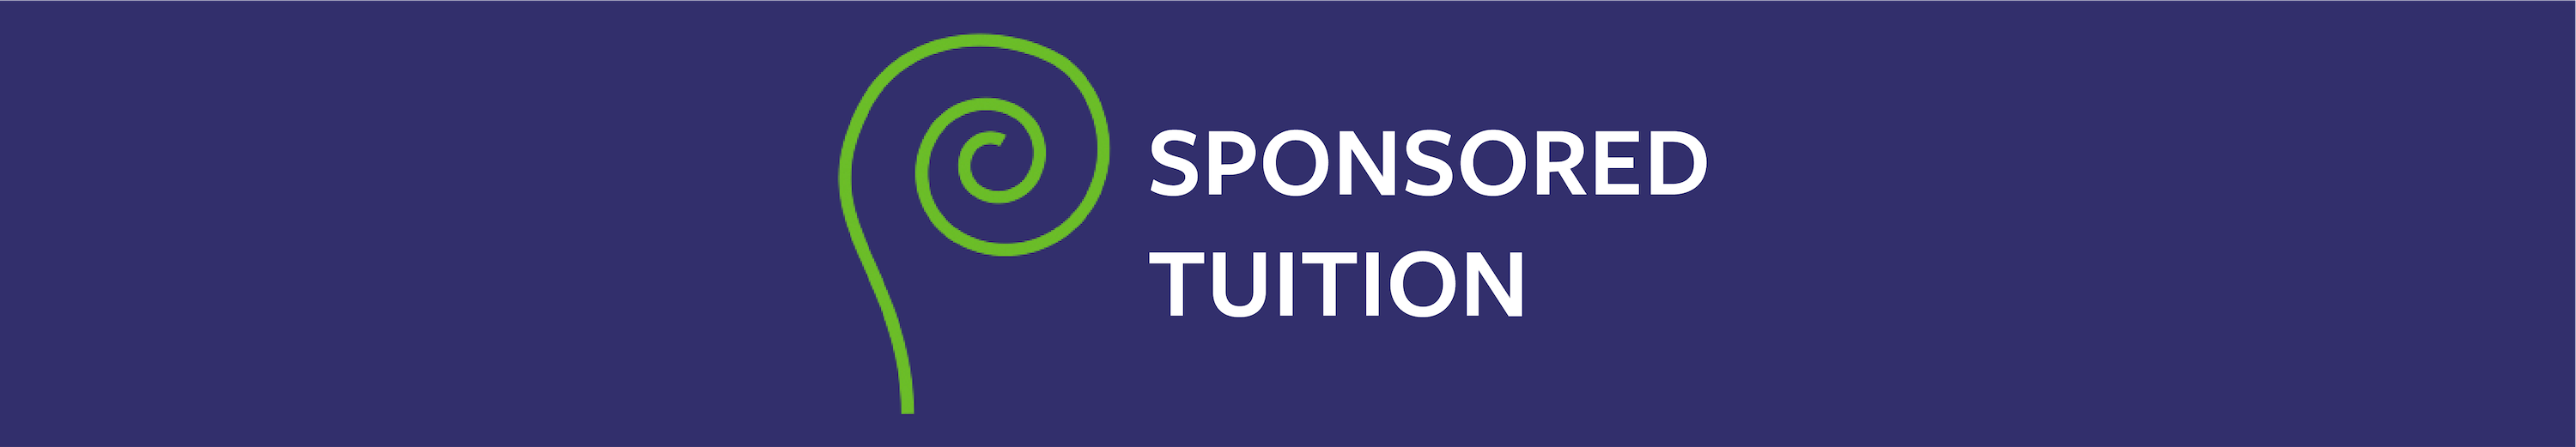 Sponsored Tuition